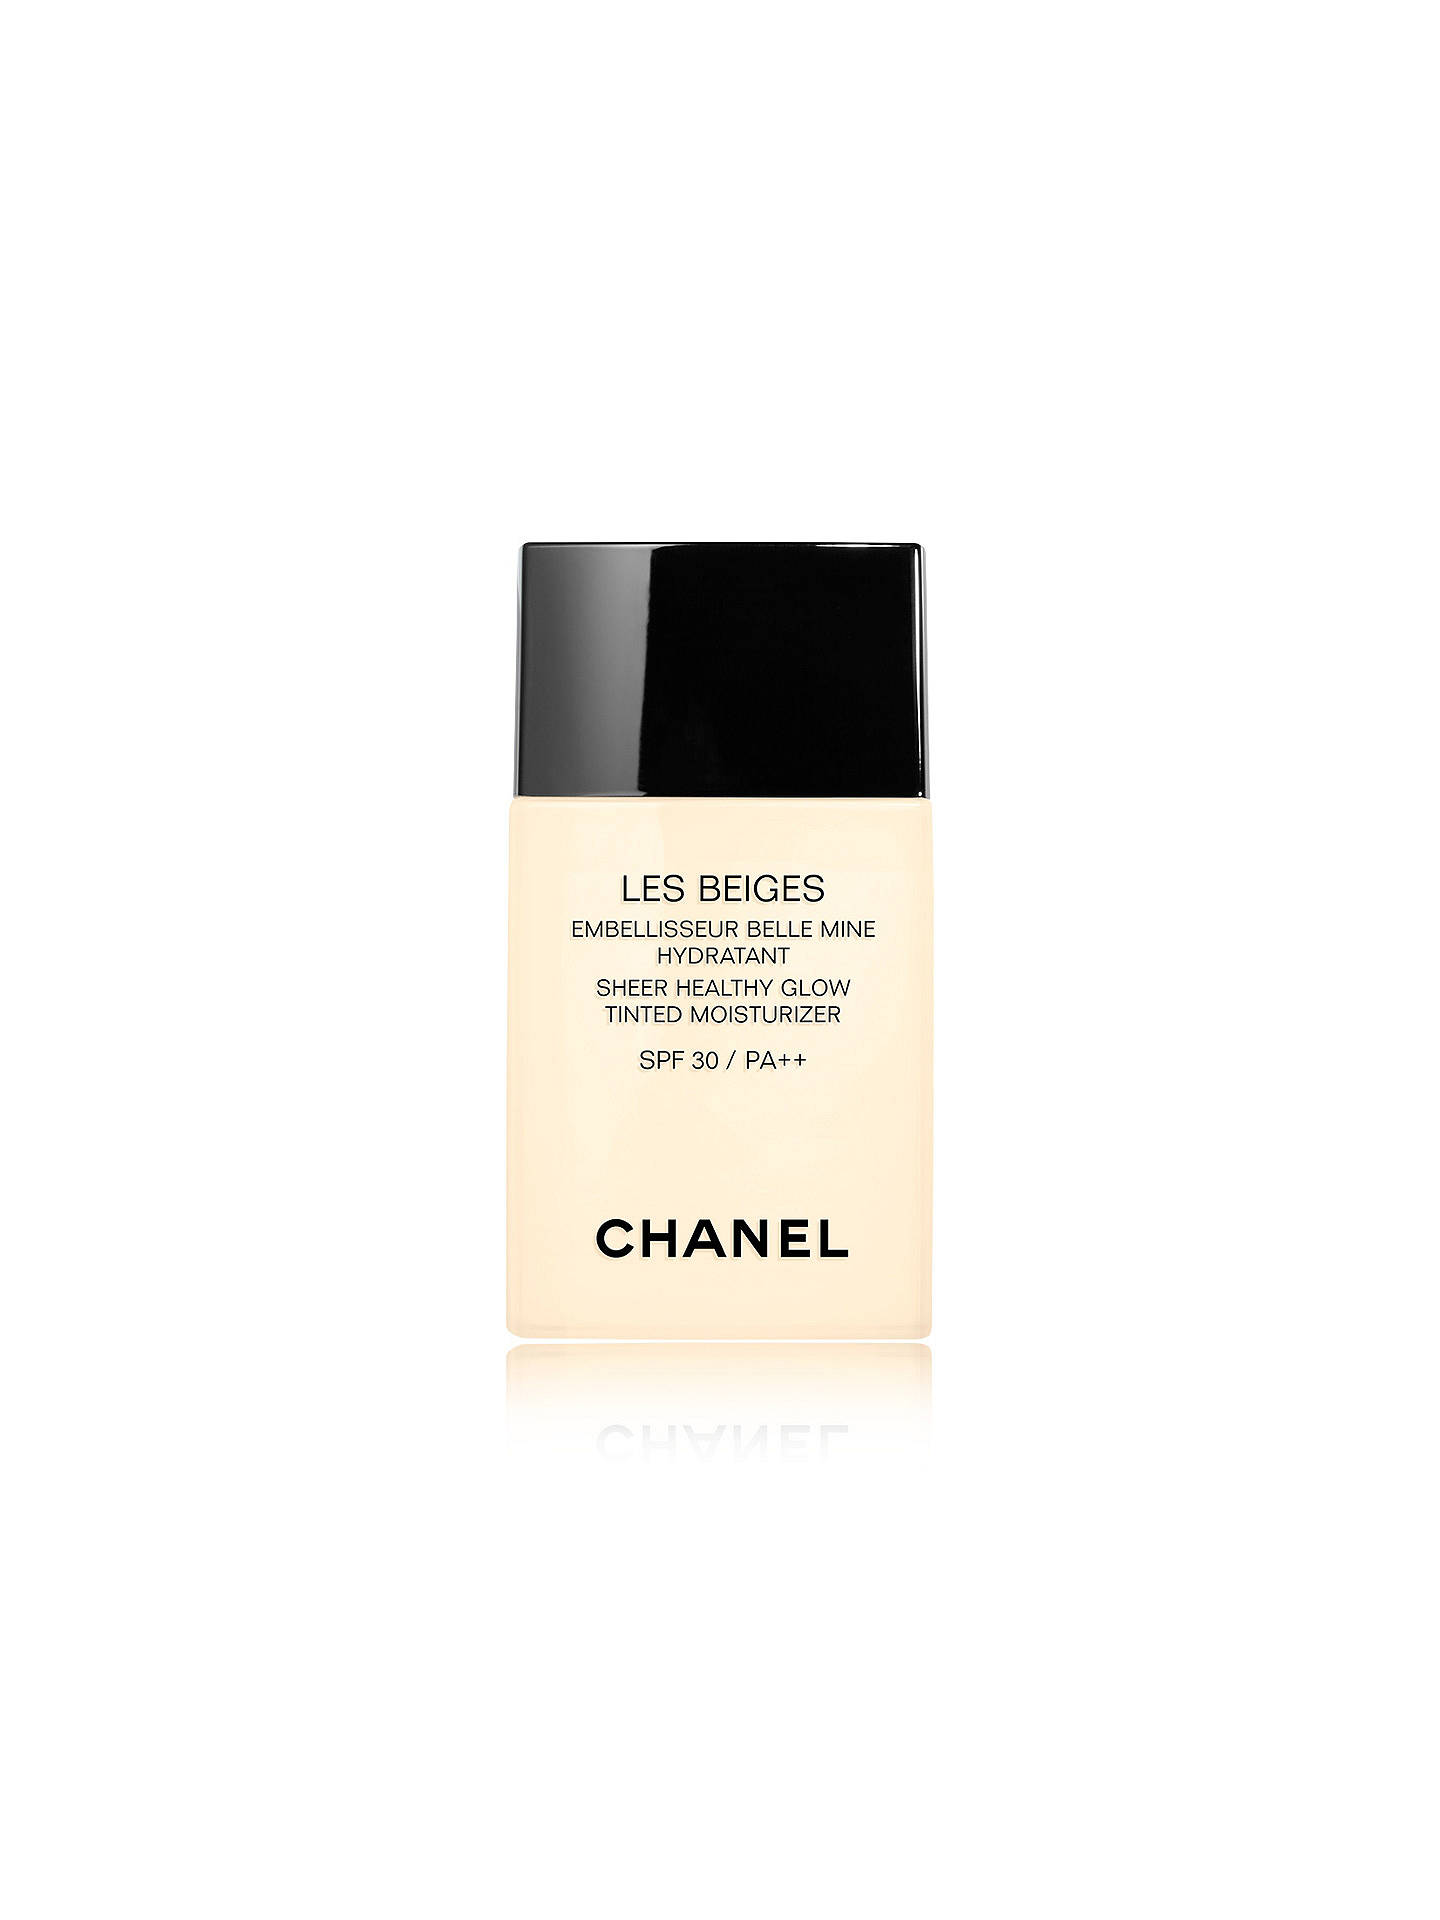 Buy CHANEL Les Beiges Sheer Healthy Glow Tinted Moisturiser SPF 30 / PA++, Medium Online at johnlewis.com